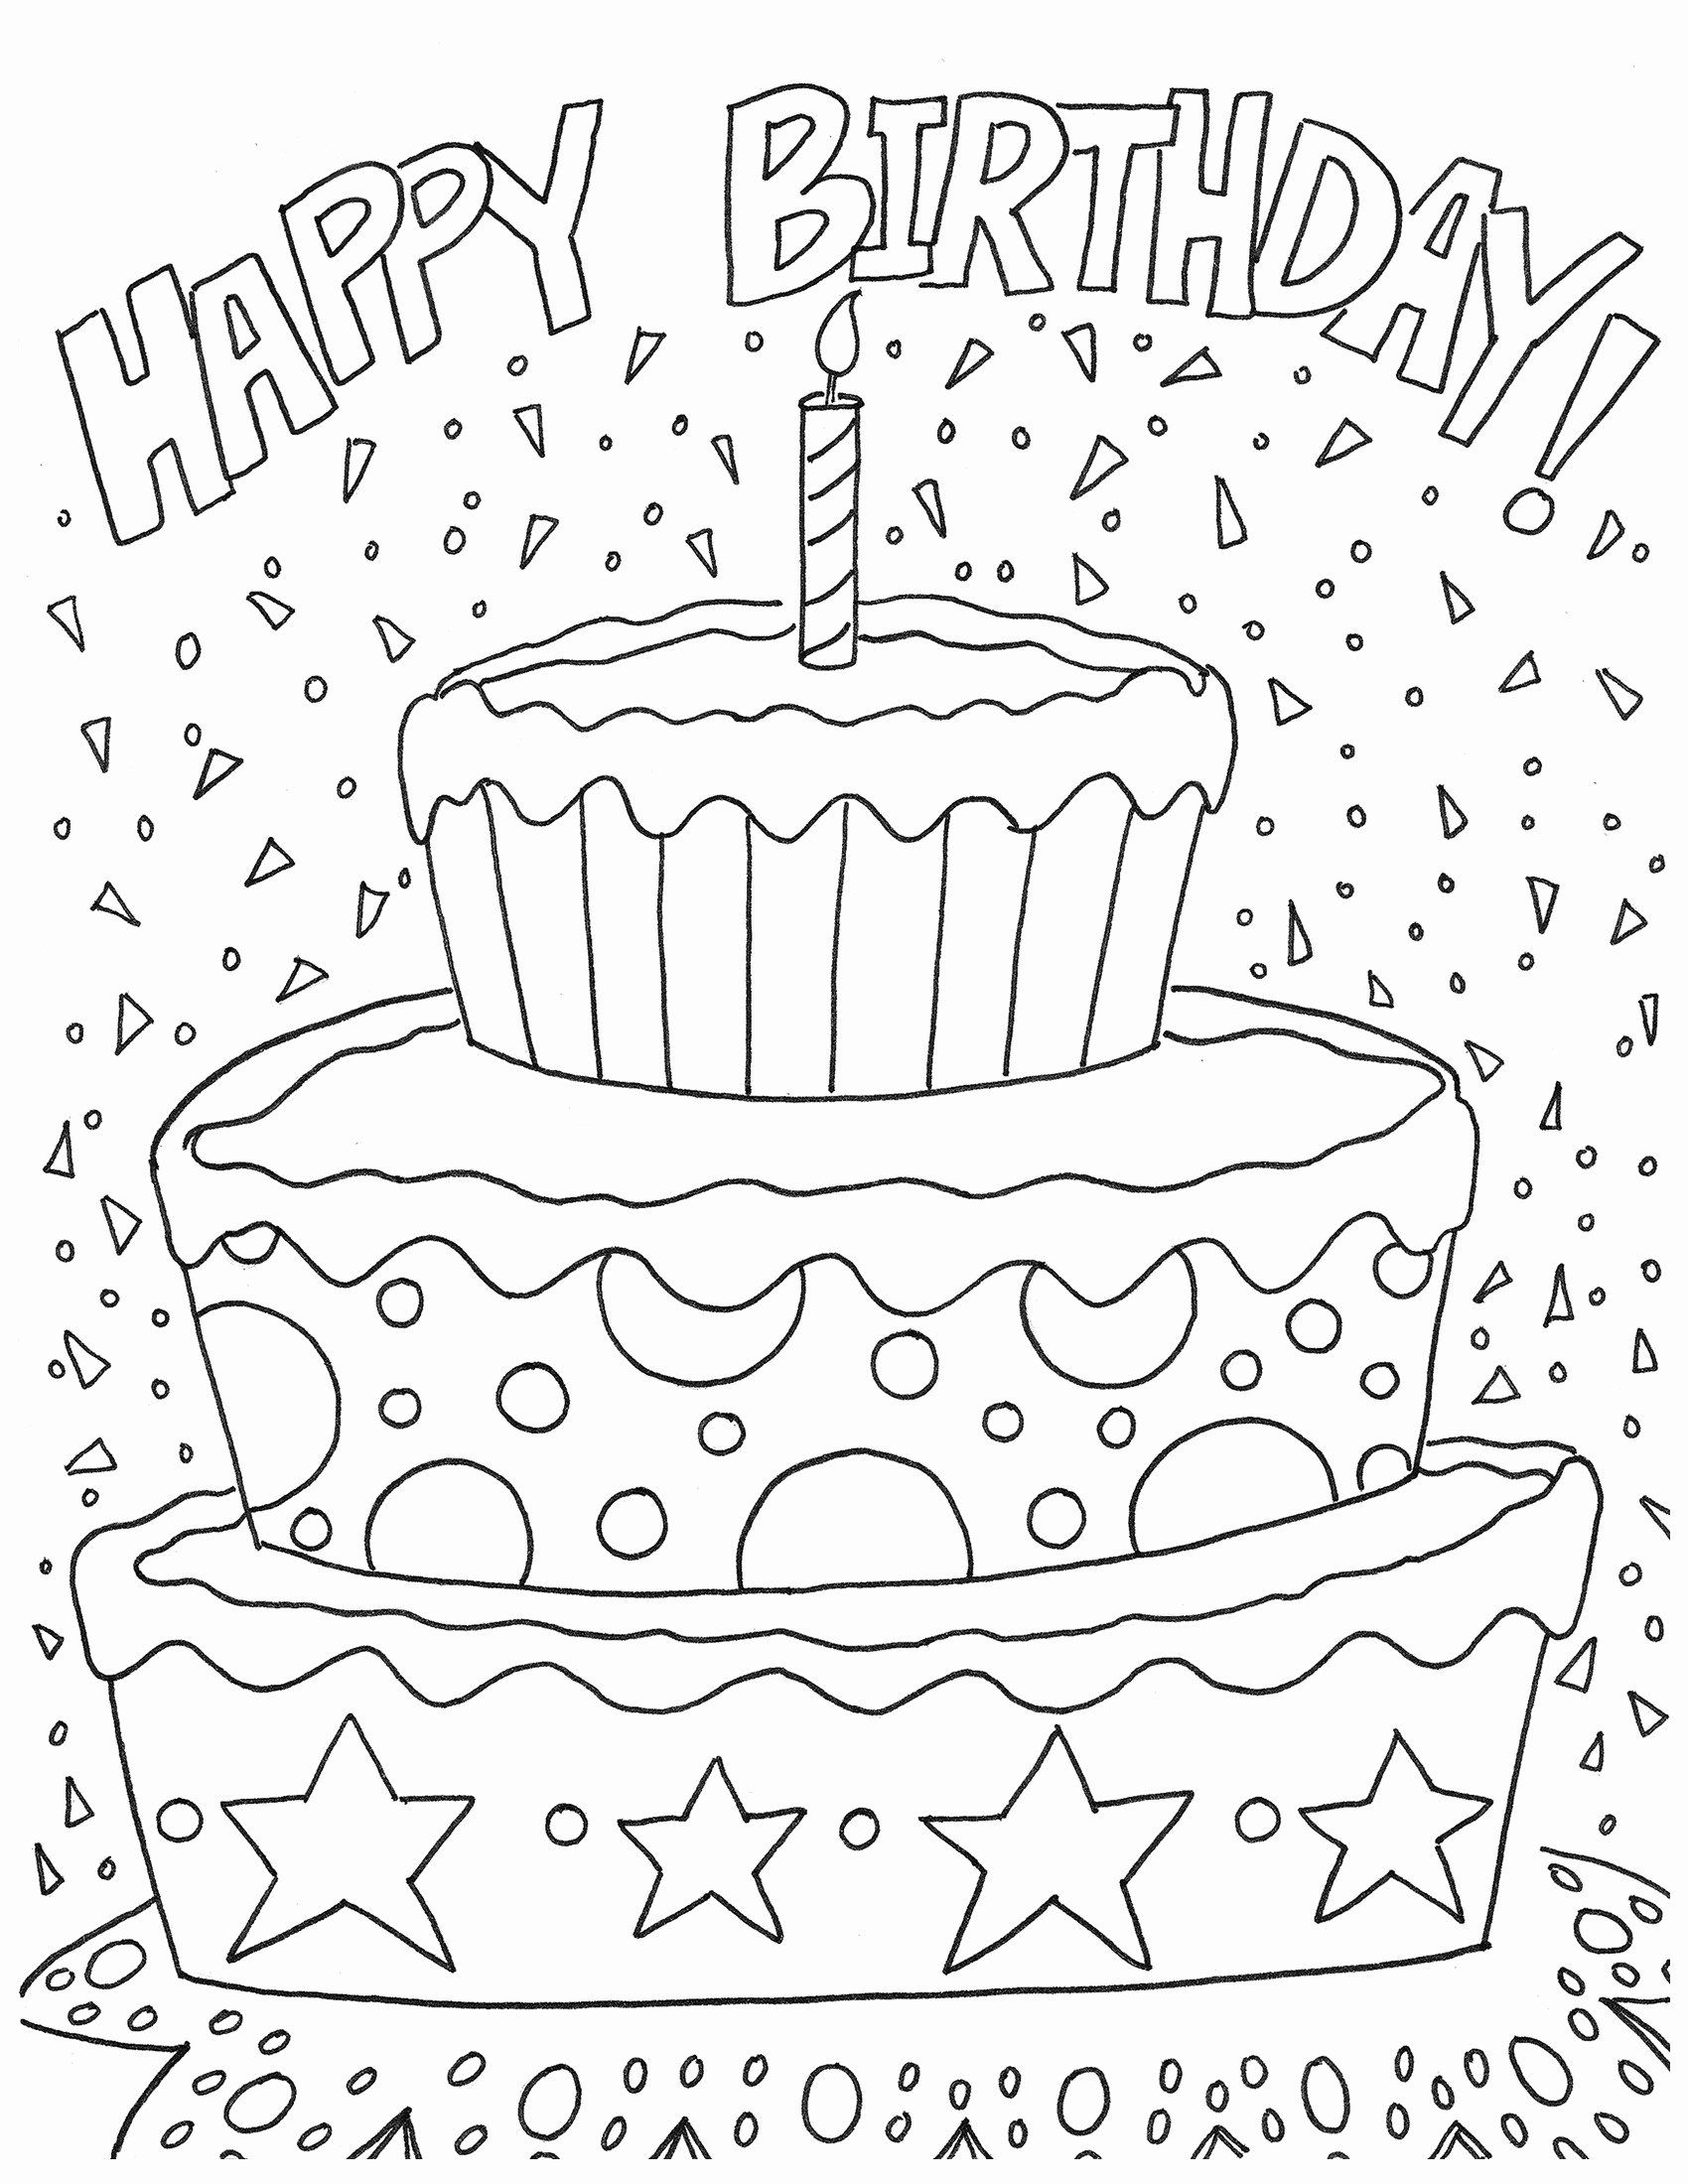 Birthday Coloring Pages To Print Lovely Elegant Blank Birthday